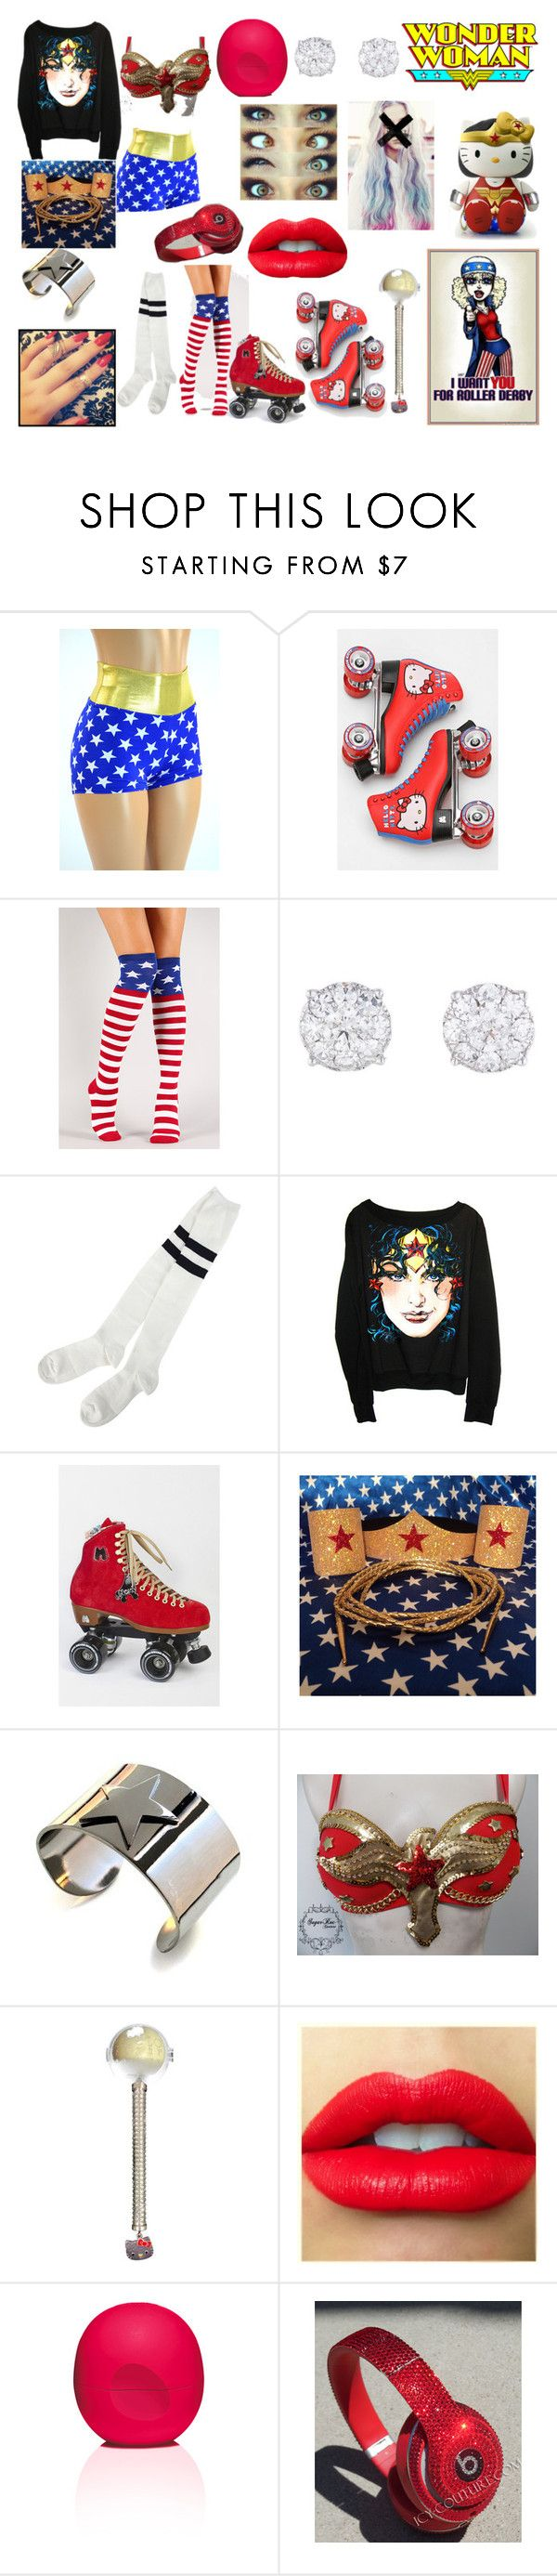 Dukes roller shoes -  Roller Skating Wonder Woman By Mokatinker0120 Liked On Polyvore Featuring Hello Kitty